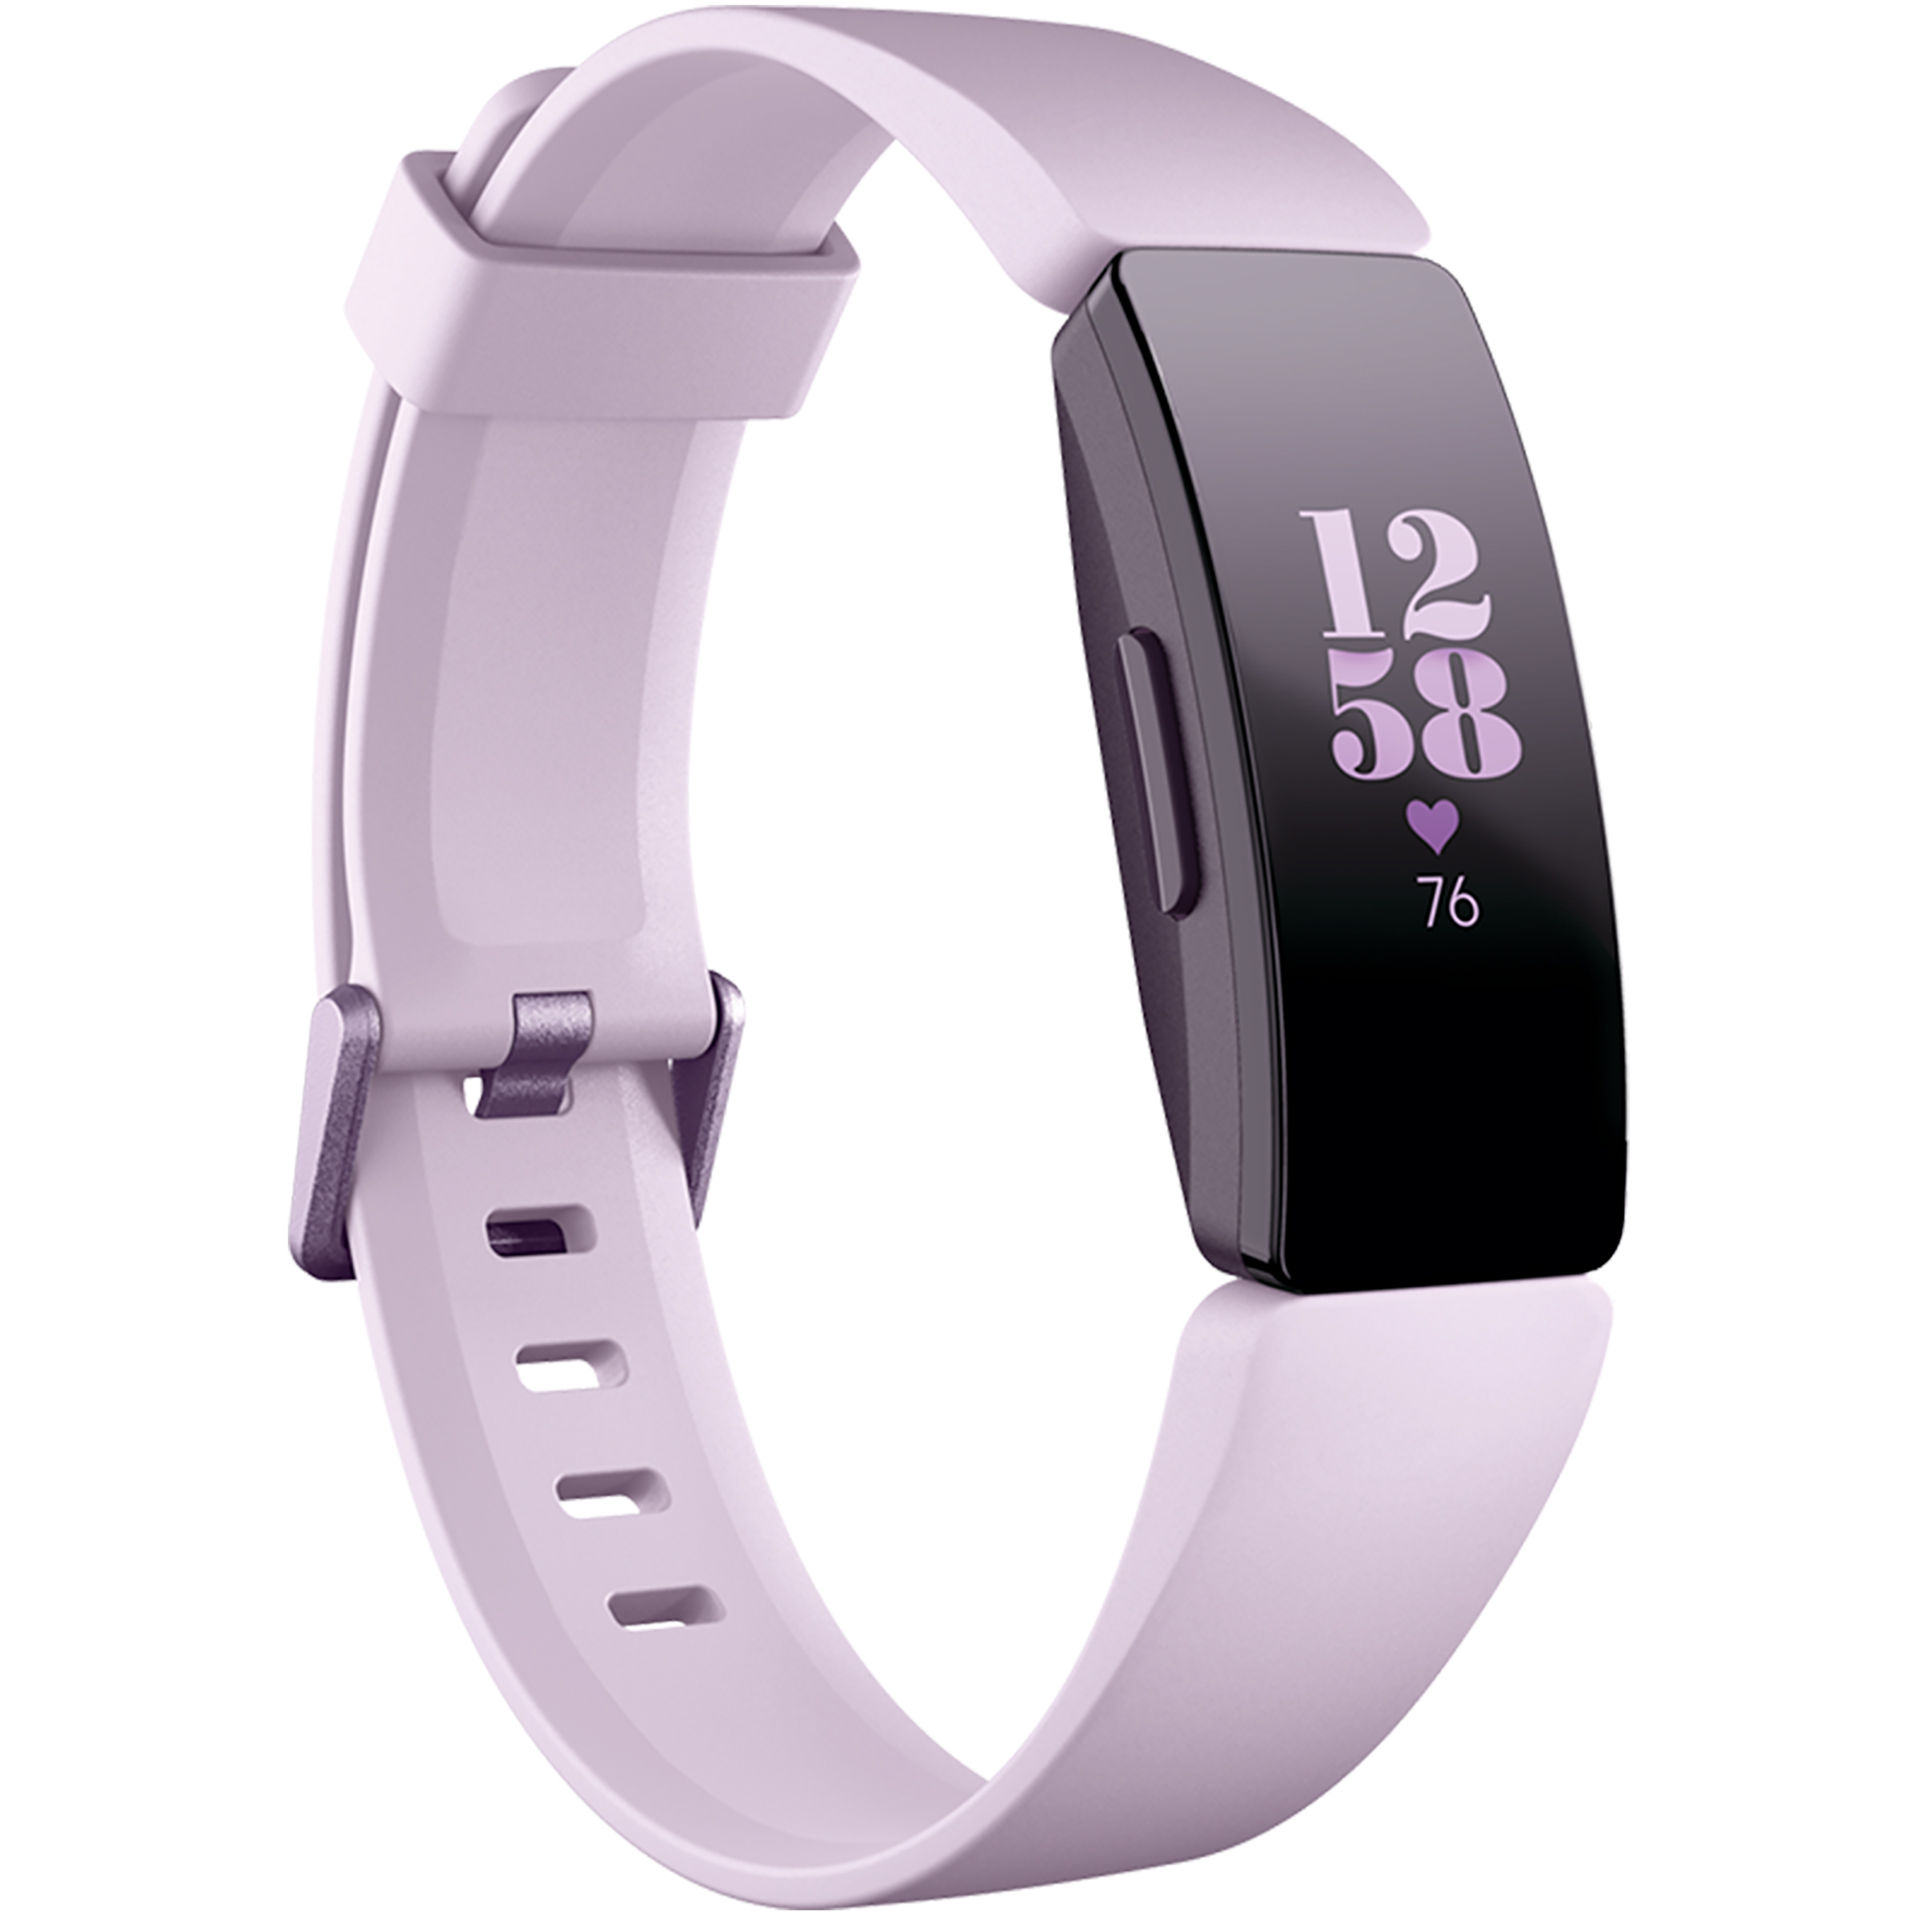 Fitbit Inspire HR Fitness Wristband with Heart Rate Tracker - Lilac/Lilac (FB413LVLV)